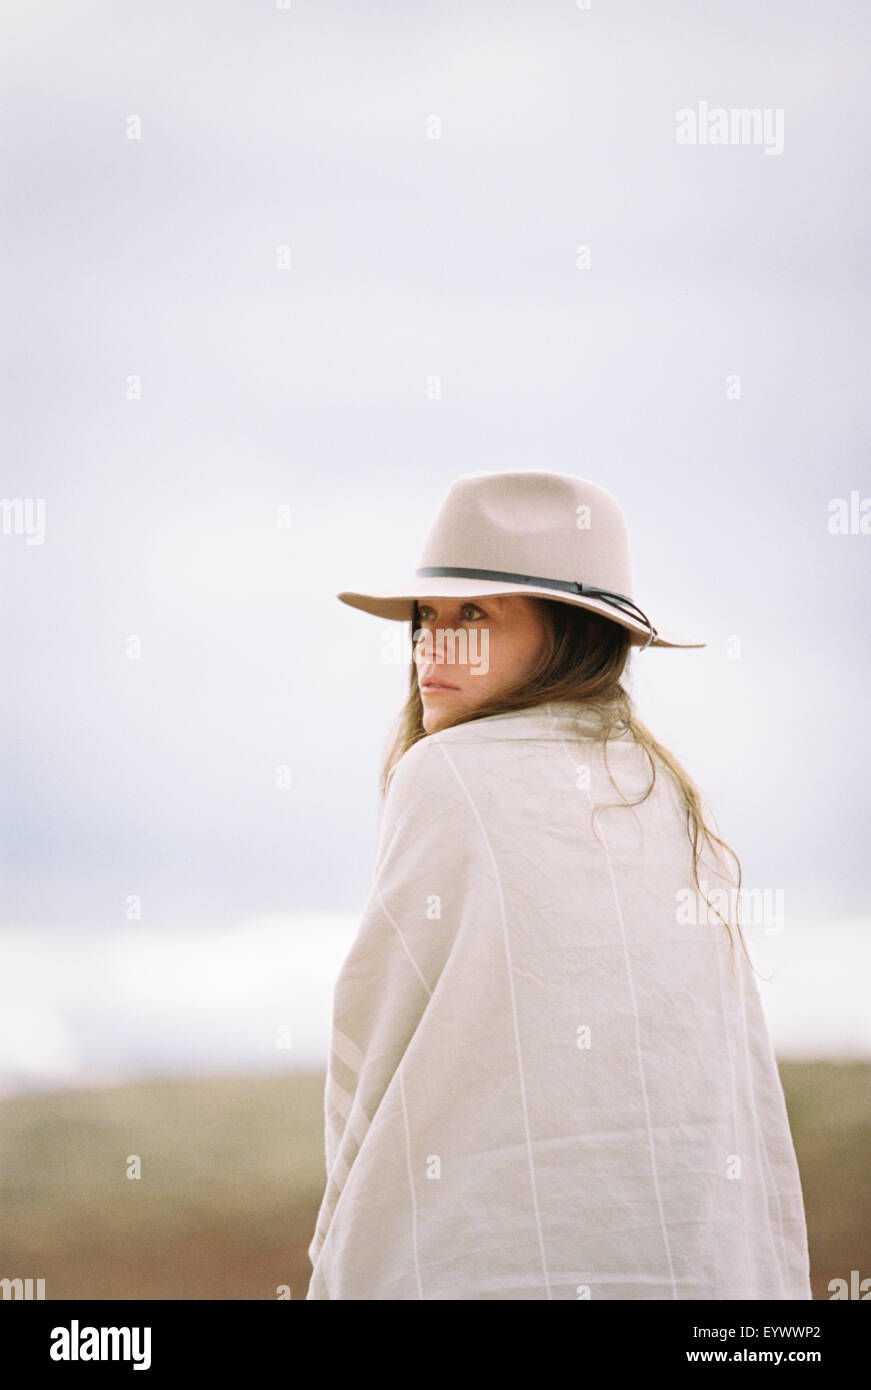 Woman wearing hat and wrap smiling at the camera. - Stock Image